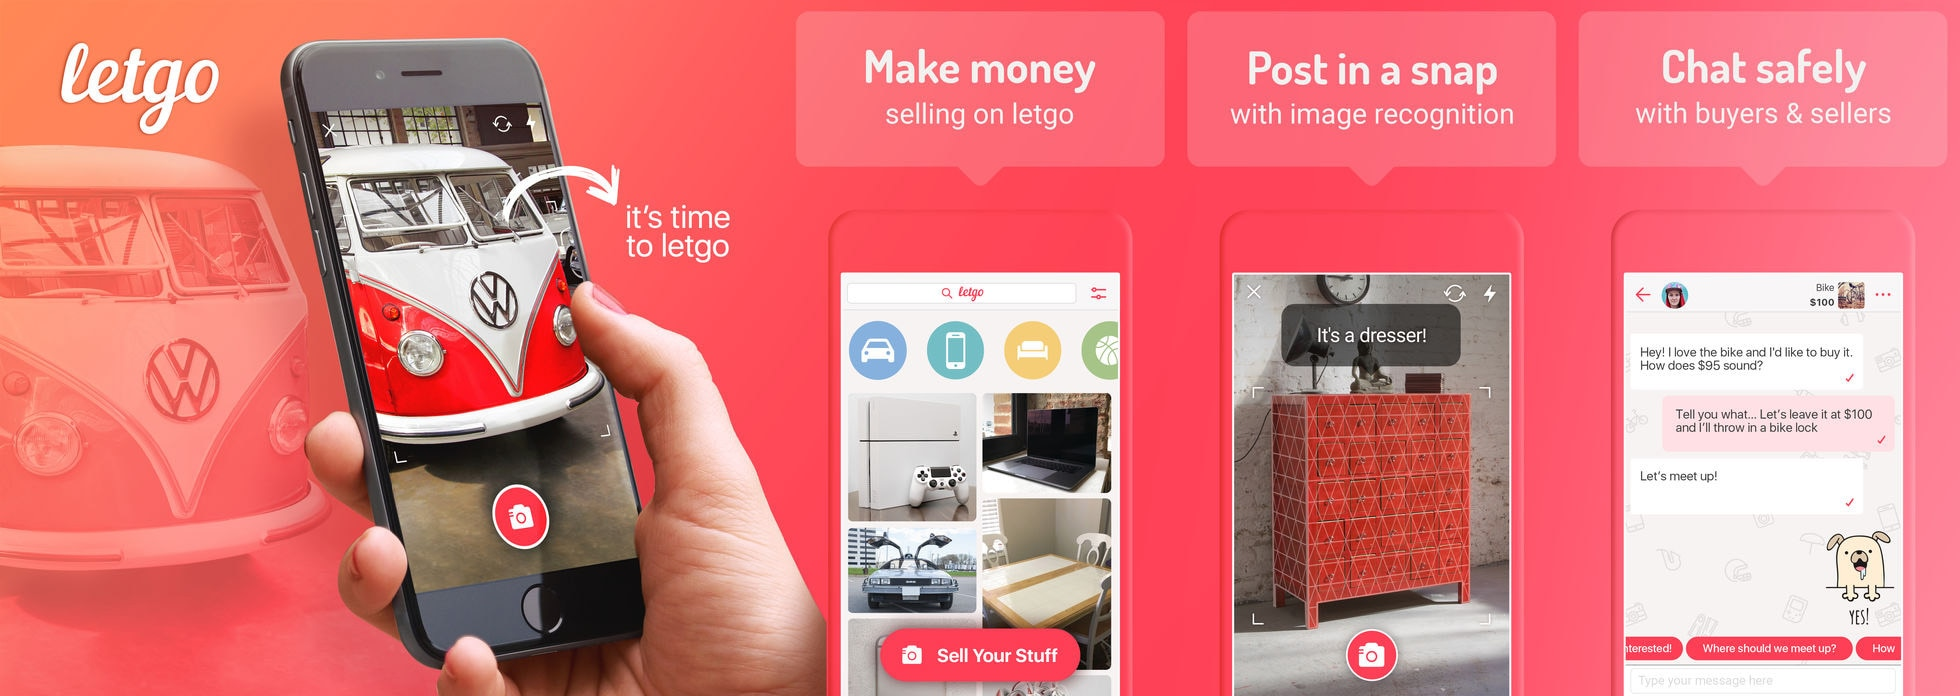 How to Post an Item on letgo